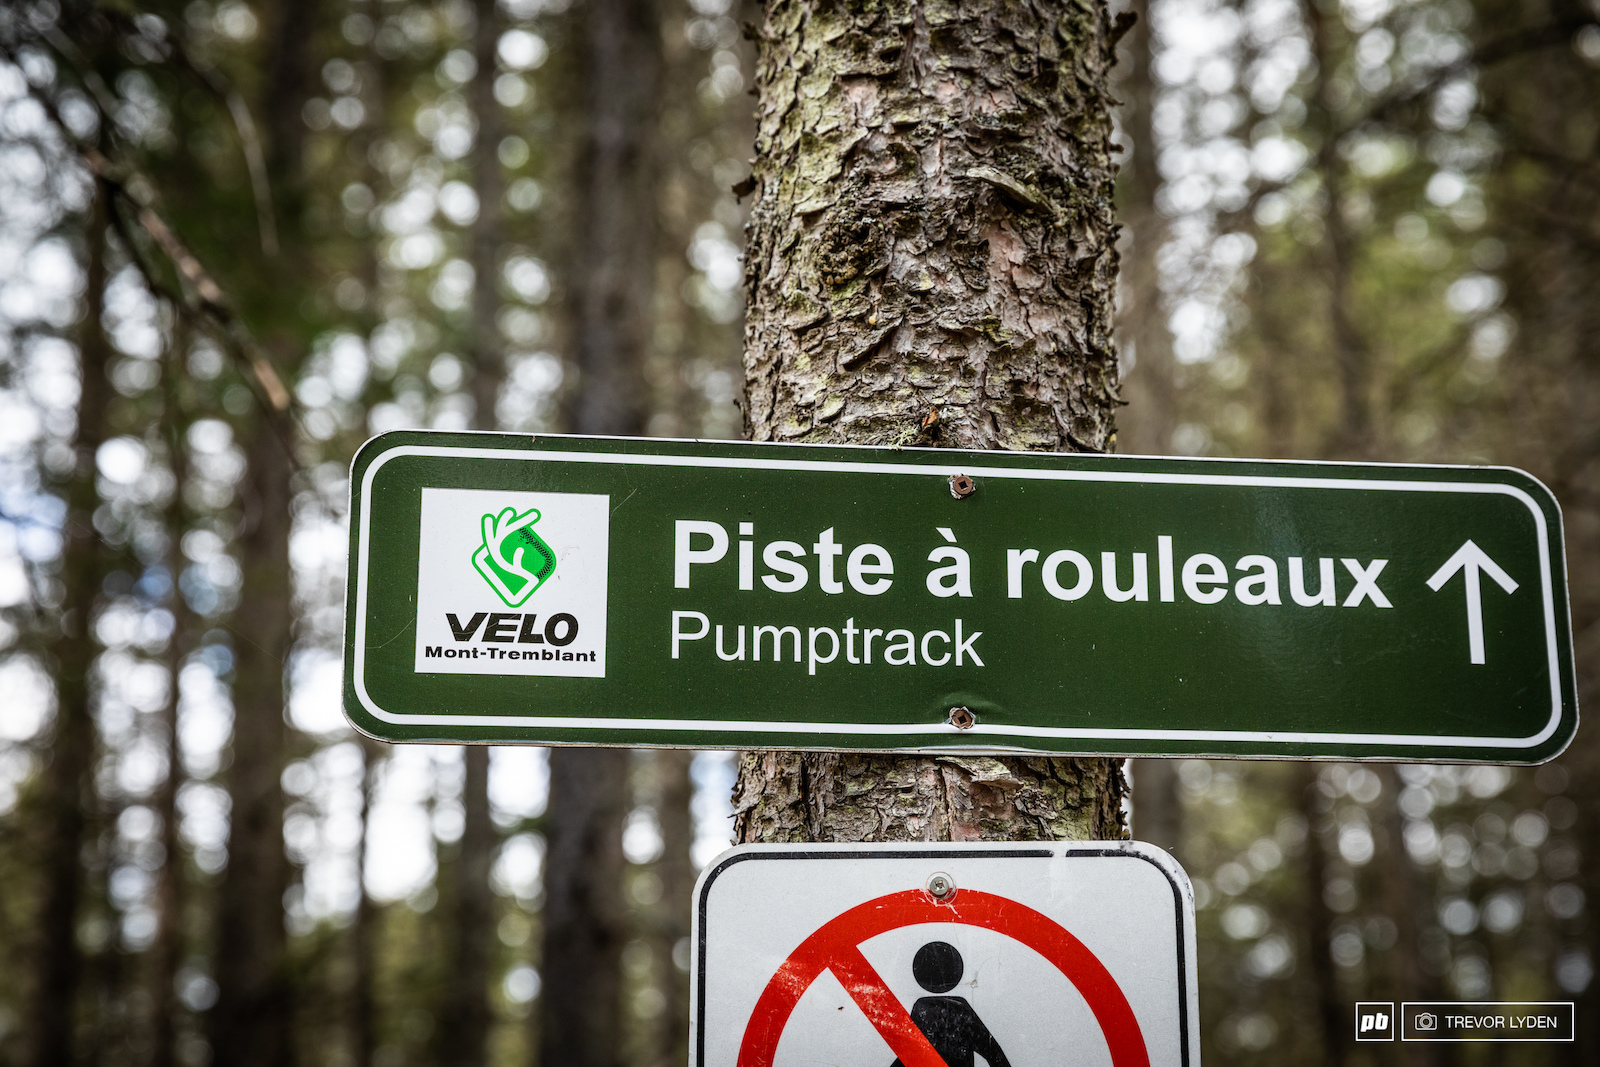 Velo Mont Tremblant has been a key part in revamping the local trail system.